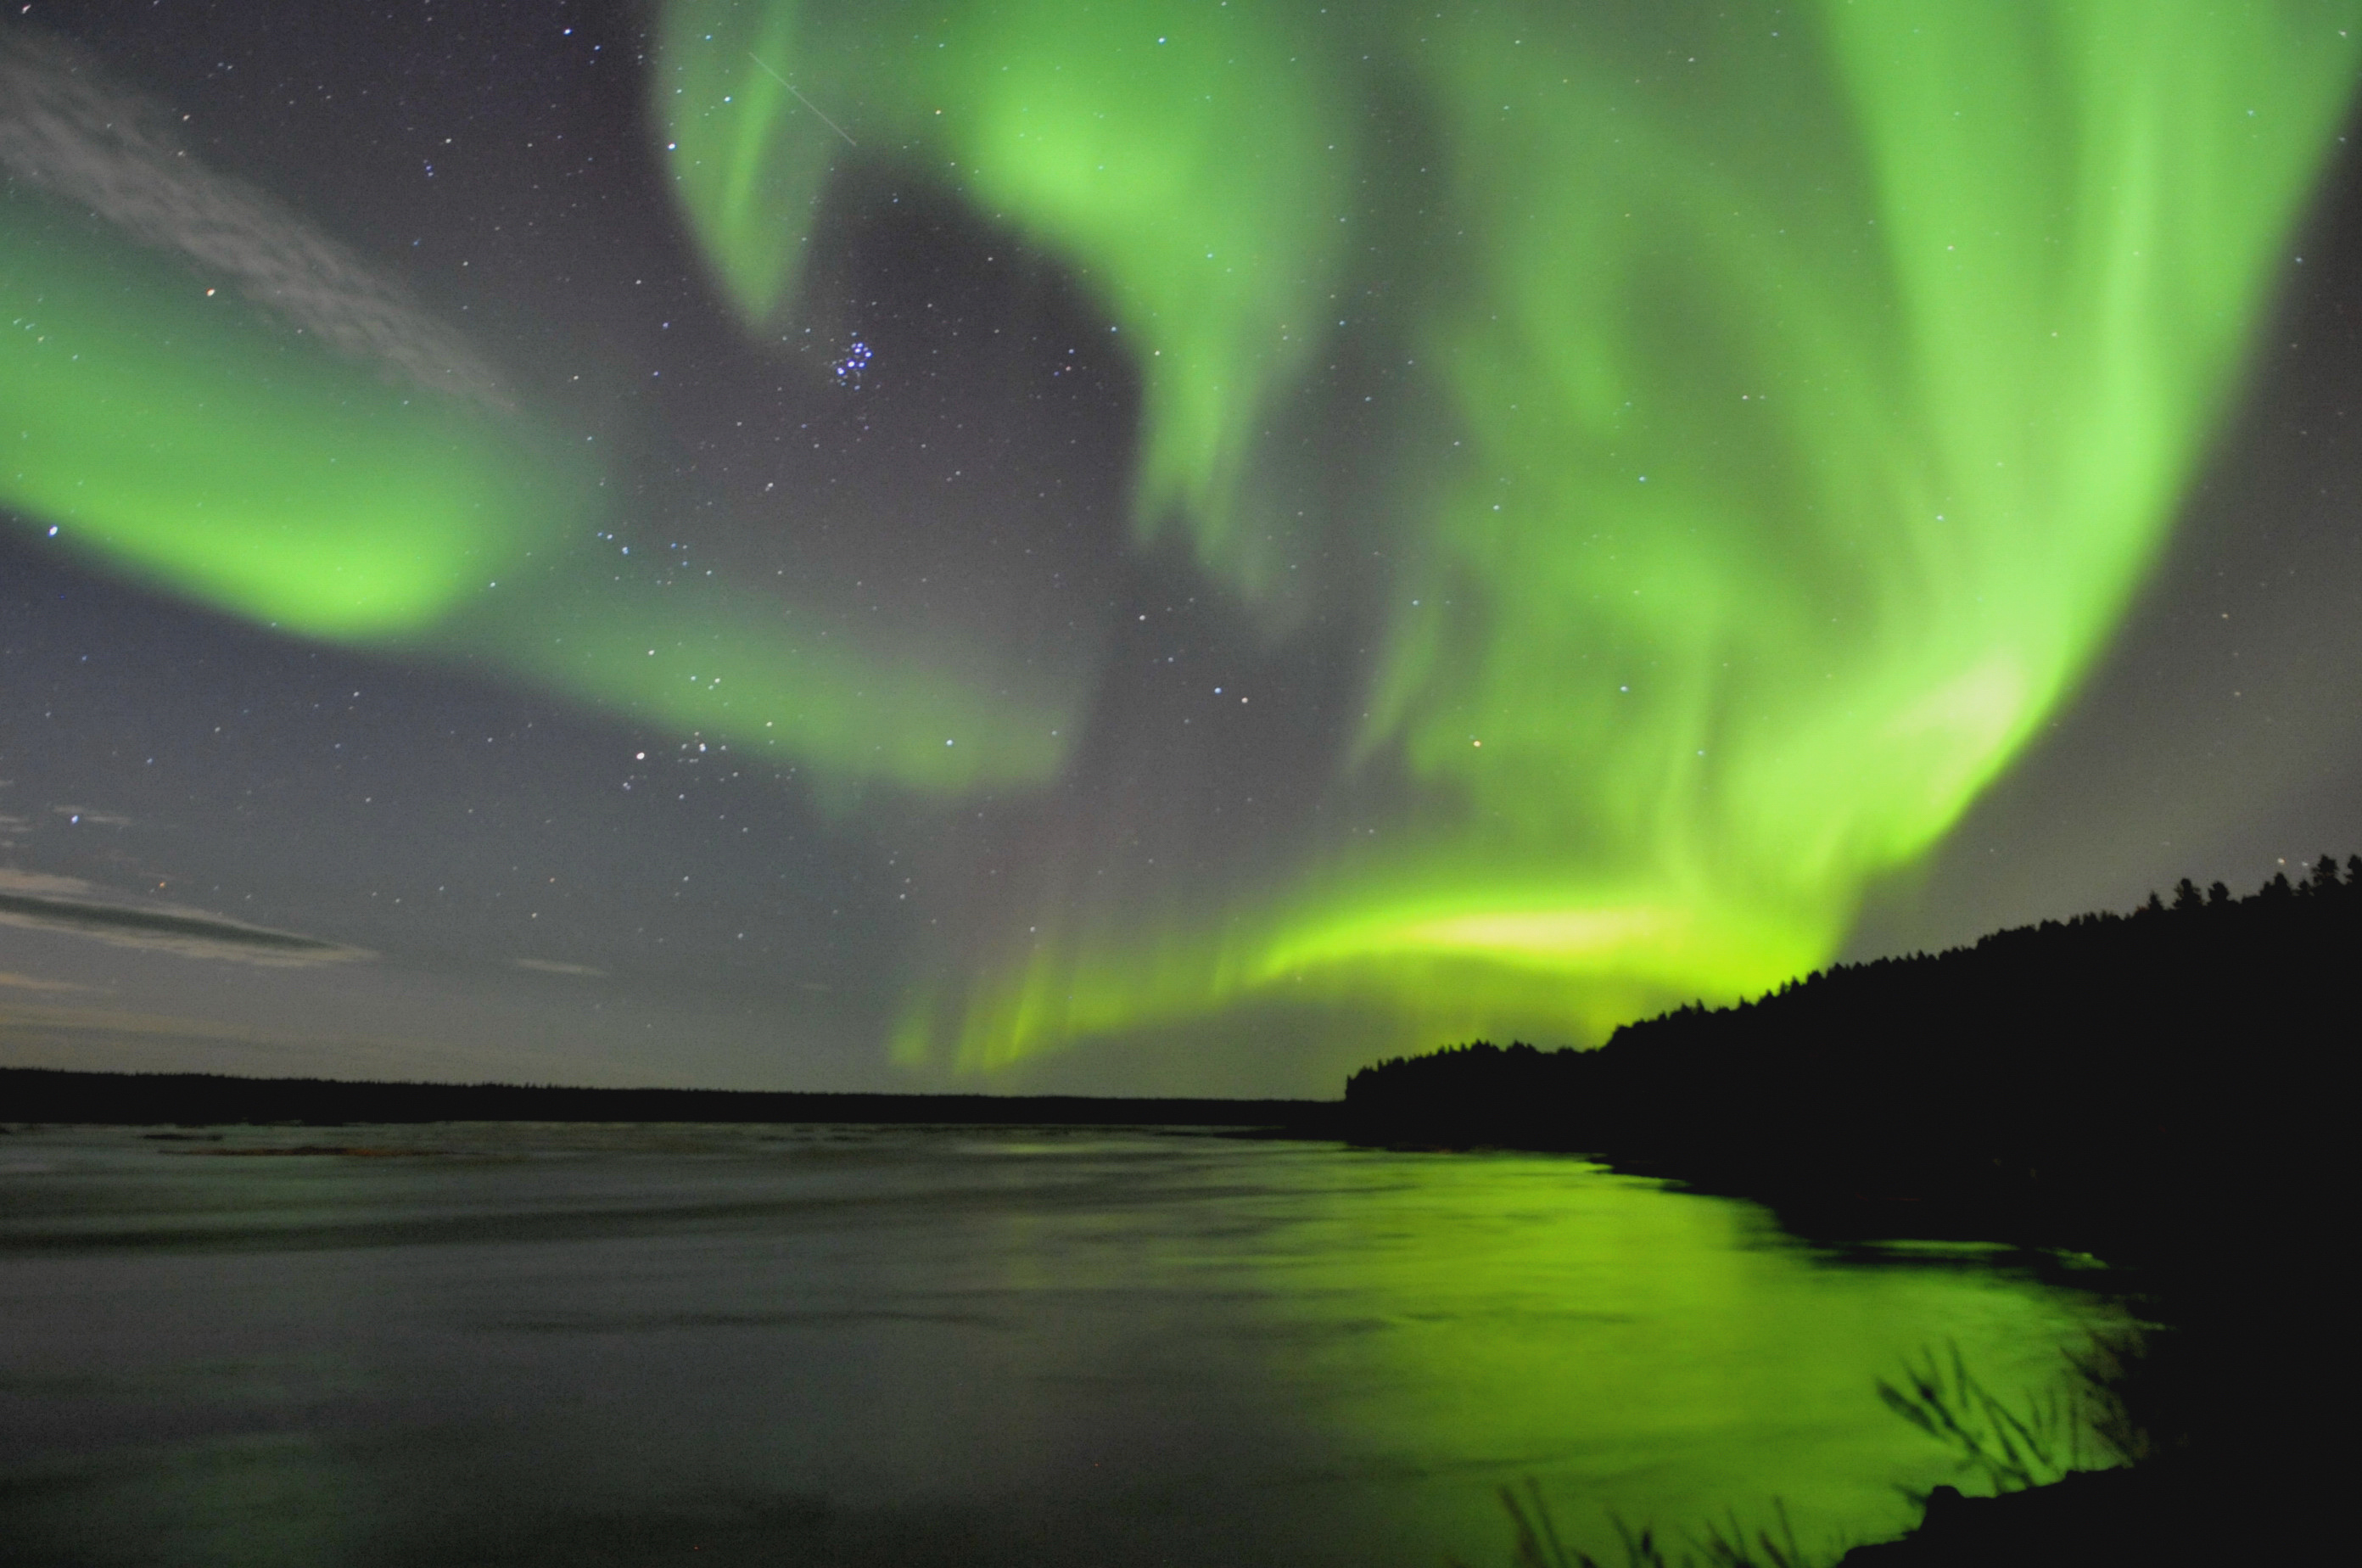 I'd love to see the Northern Lights in Canada, too.